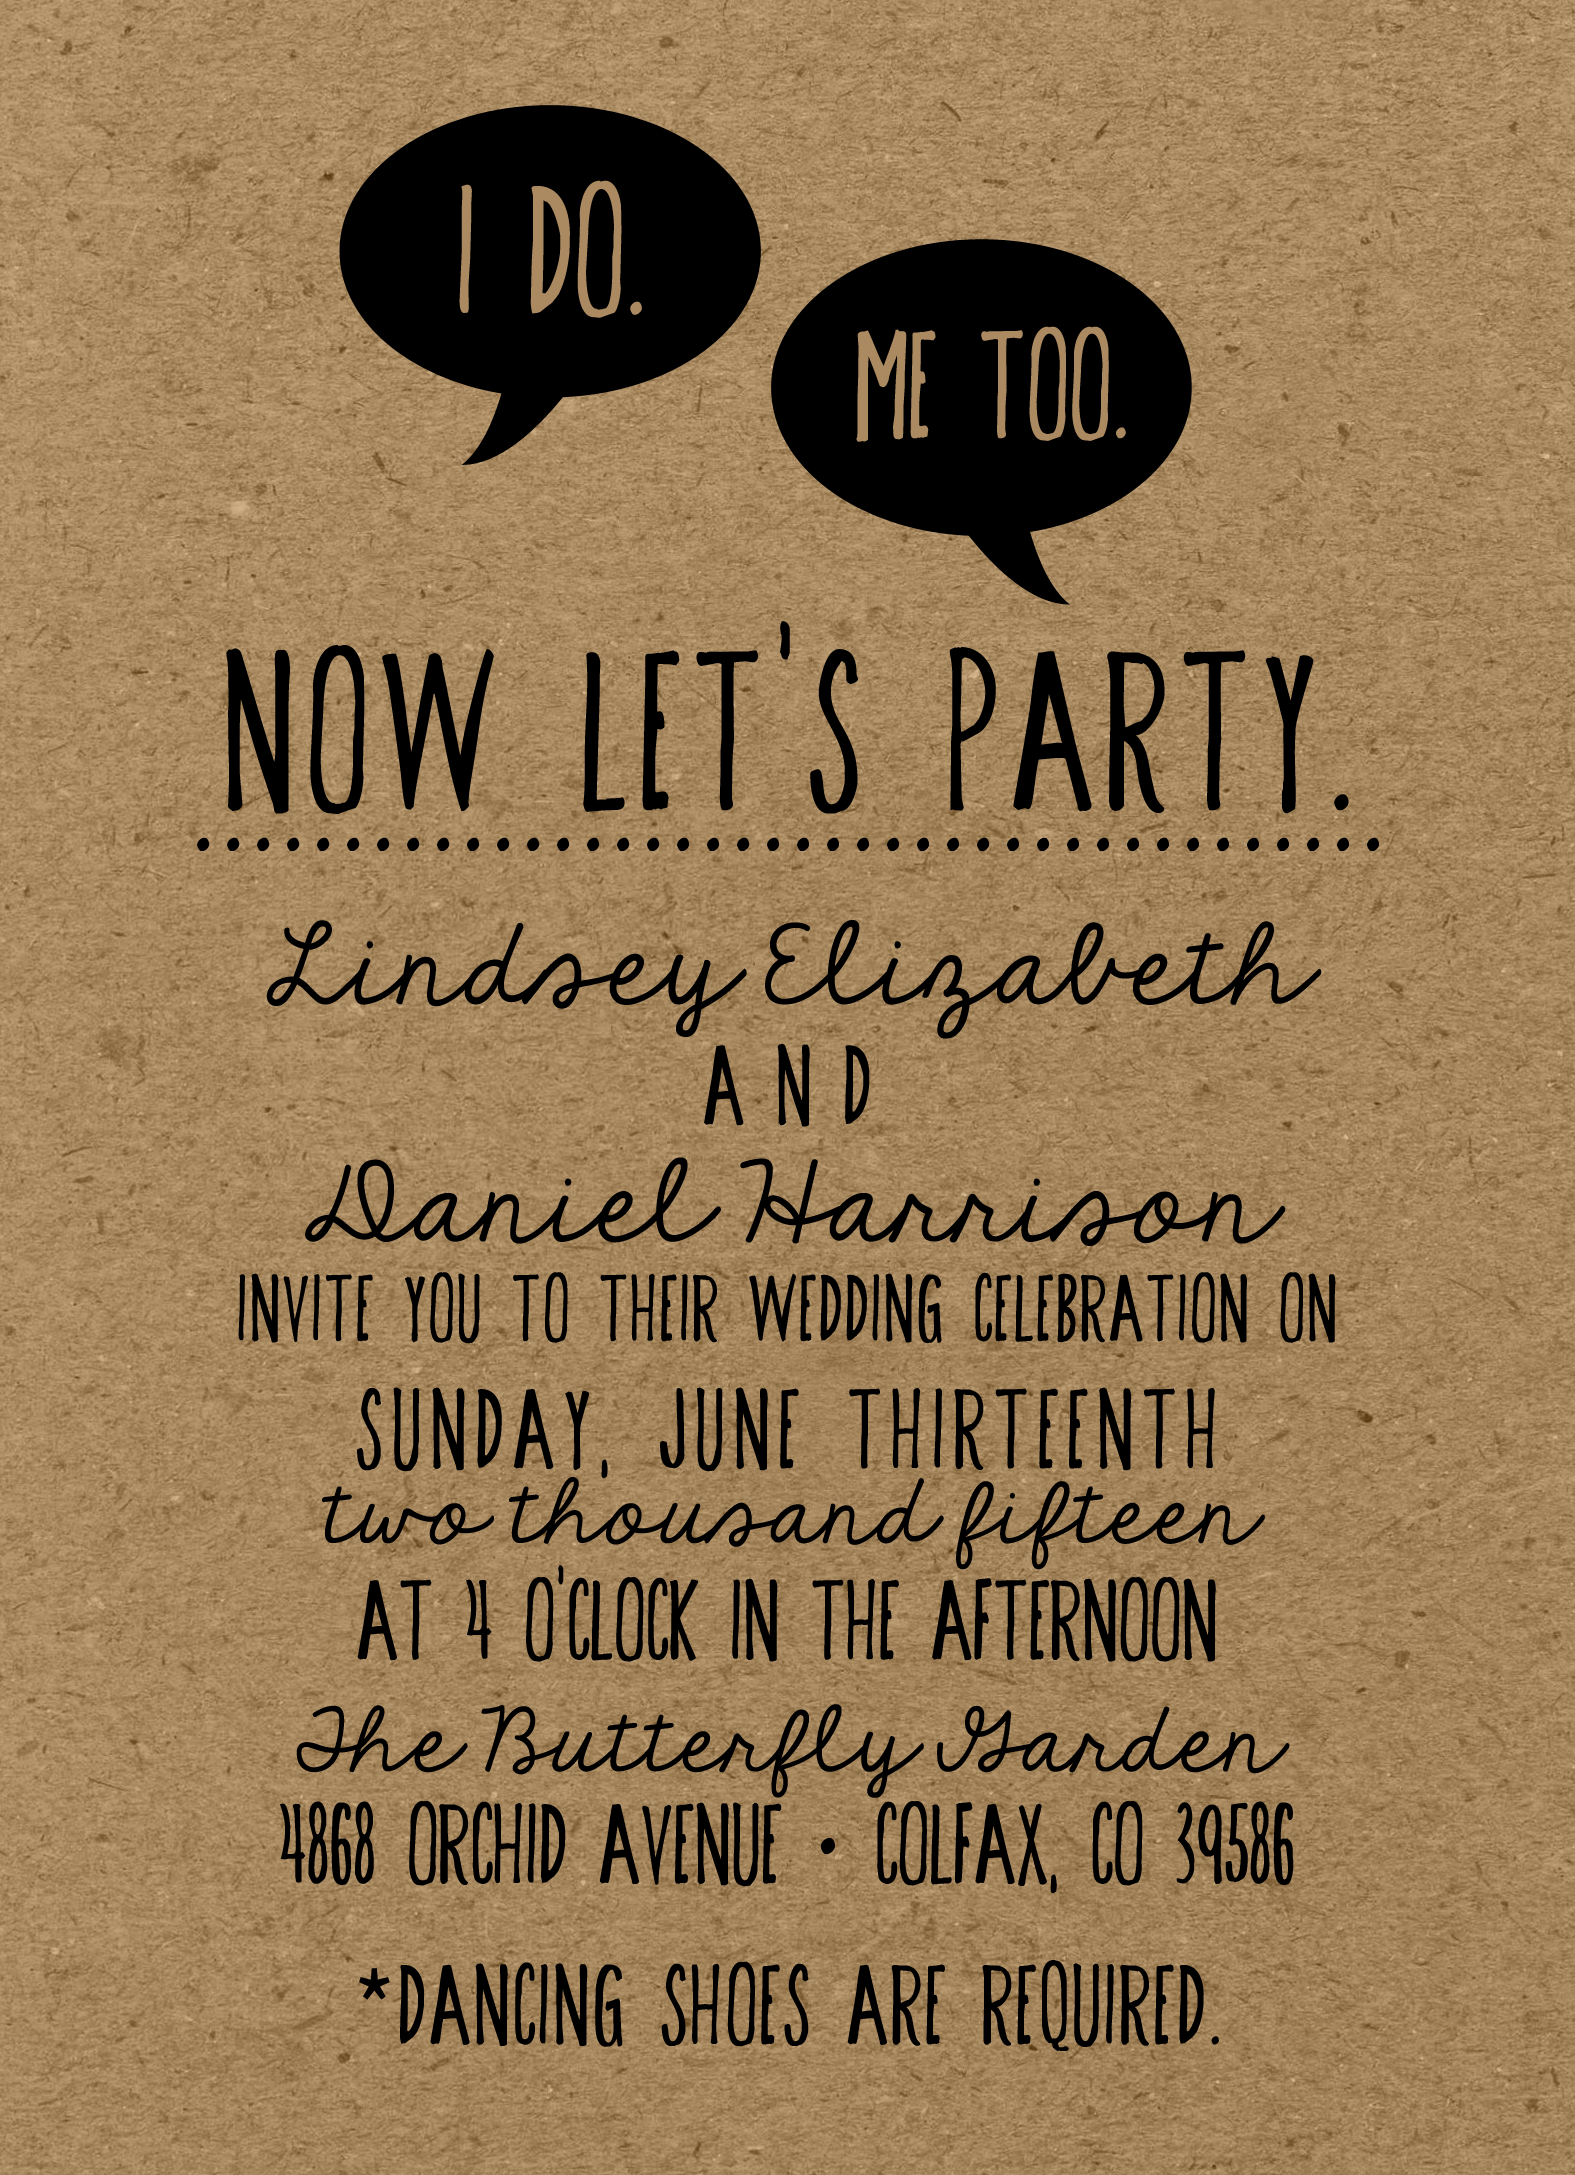 DIY Wedding Invitation Suite I Do, Me Too DEPOSIT - Printable ...